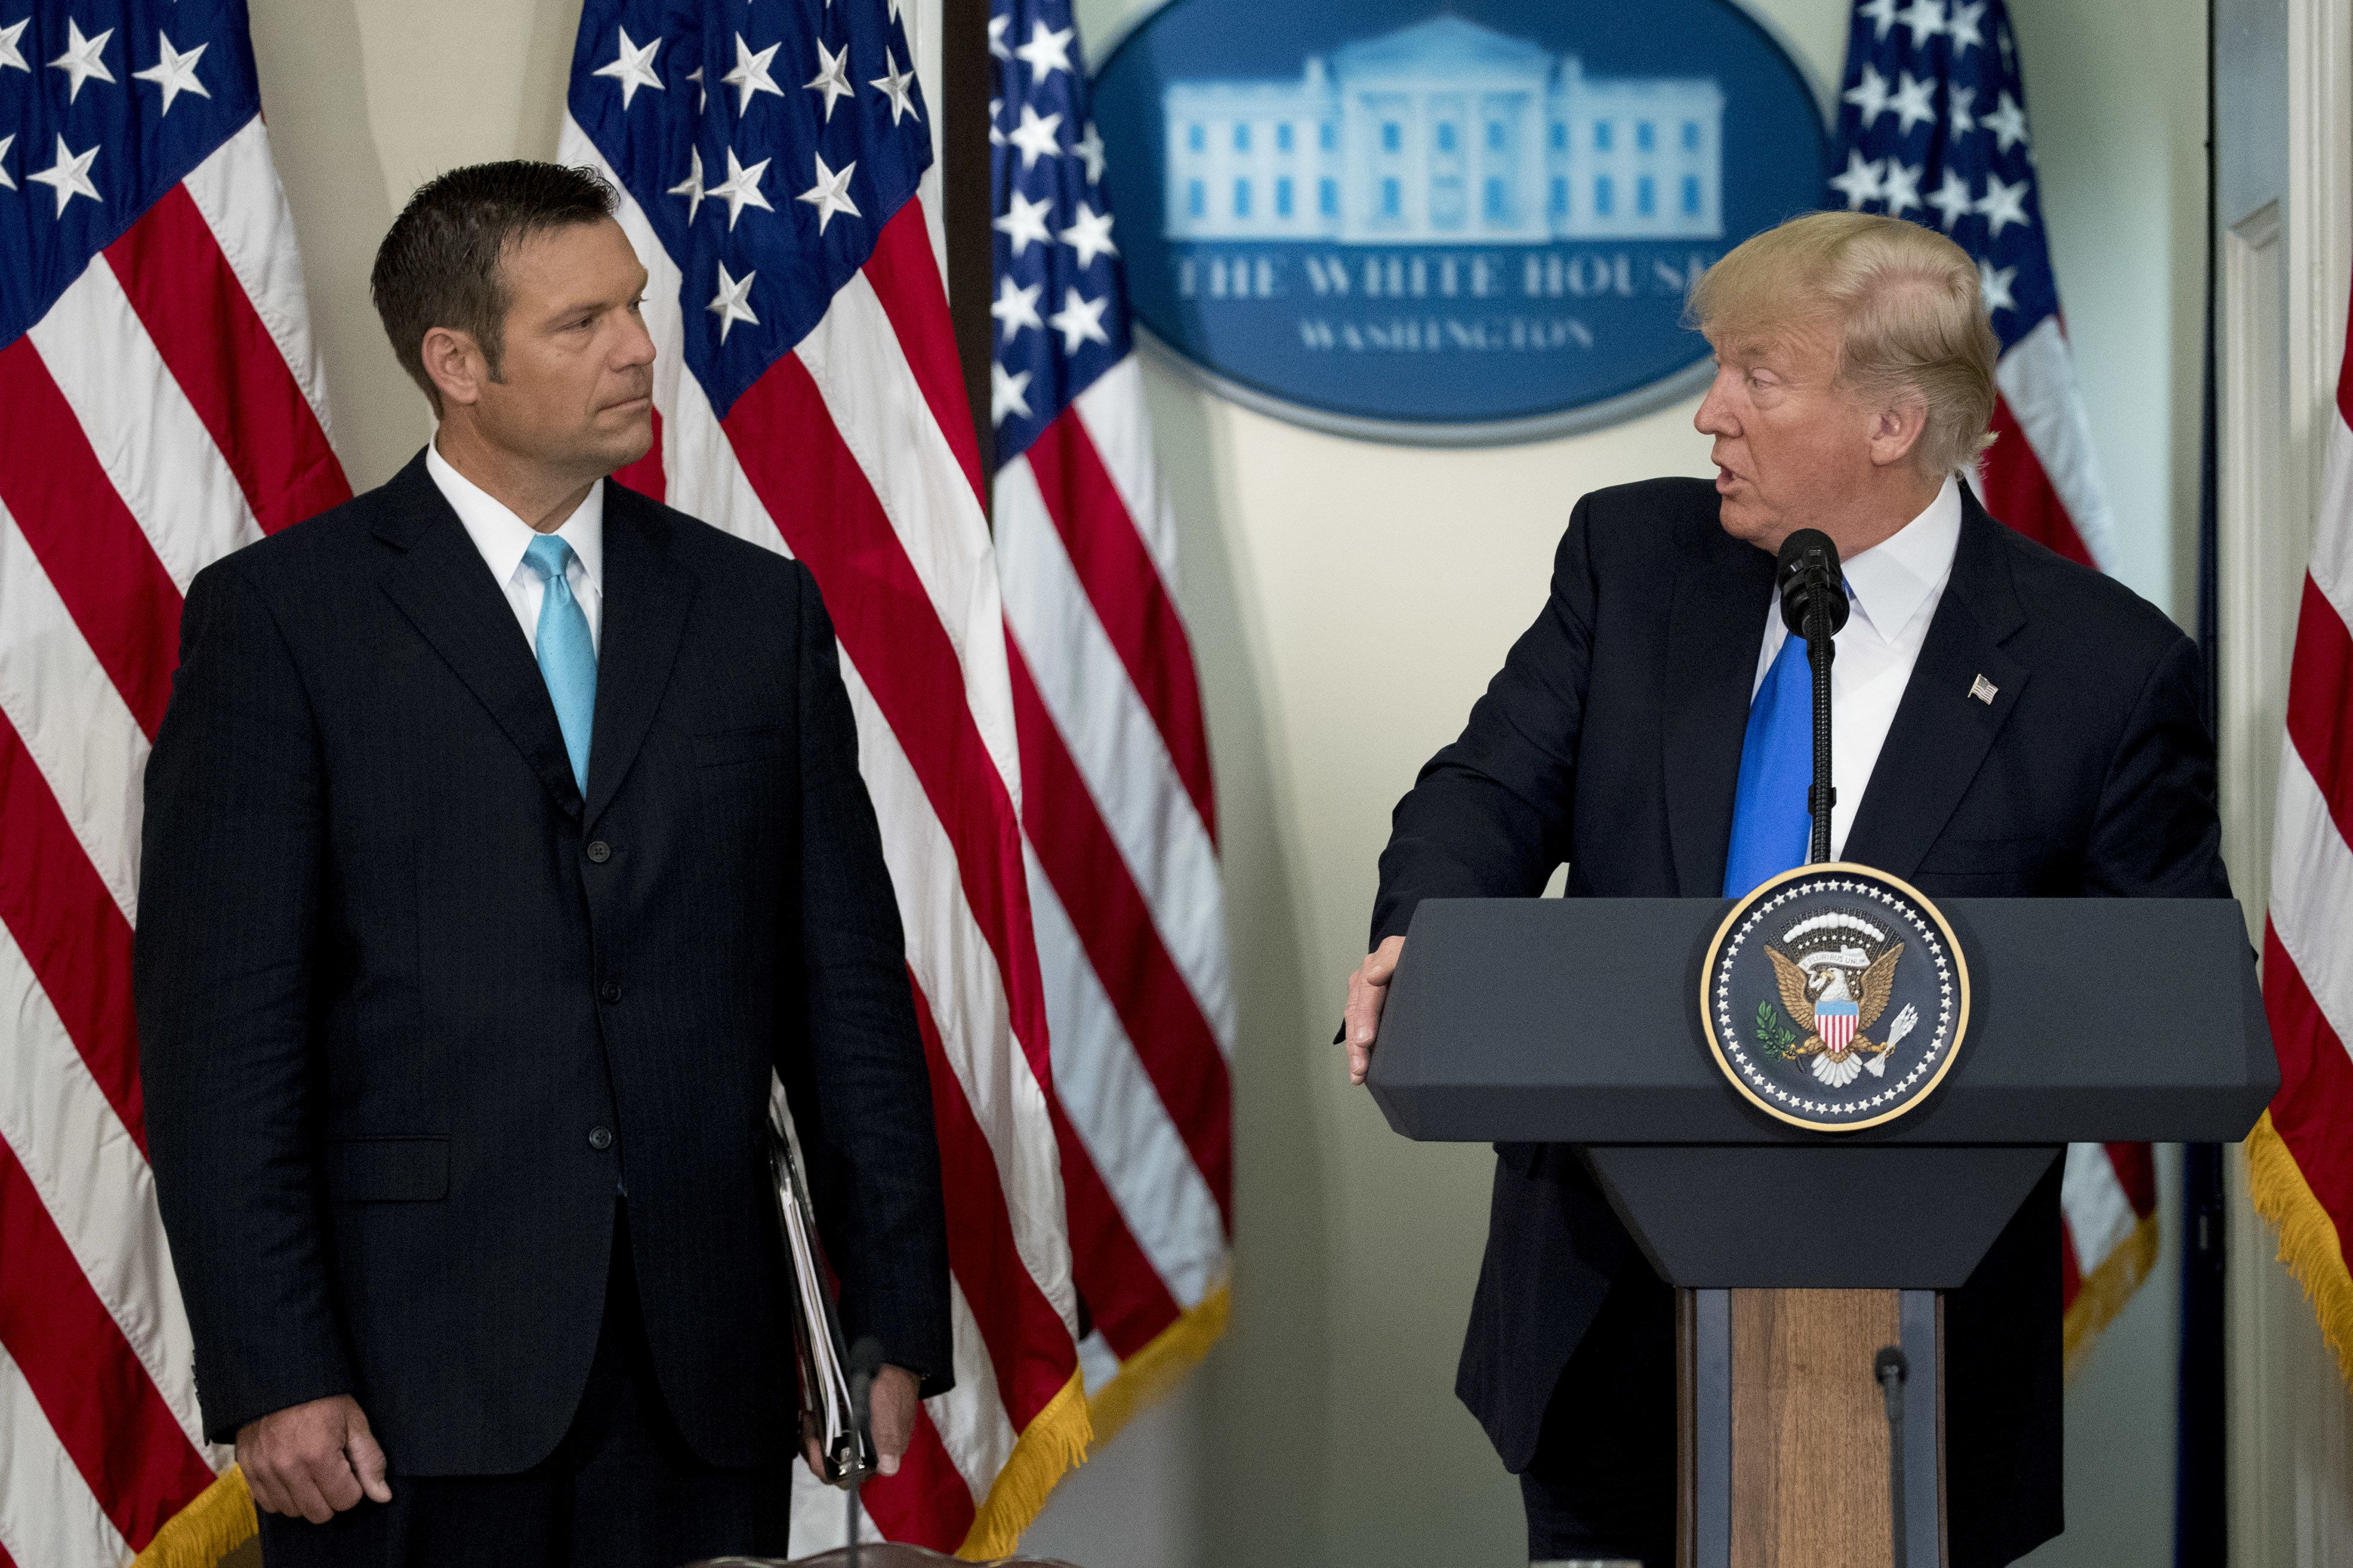 President Donald Trump speaks as Kris Kobach, Kansas secretary of state, listens during the initial meeting of the Presidenti